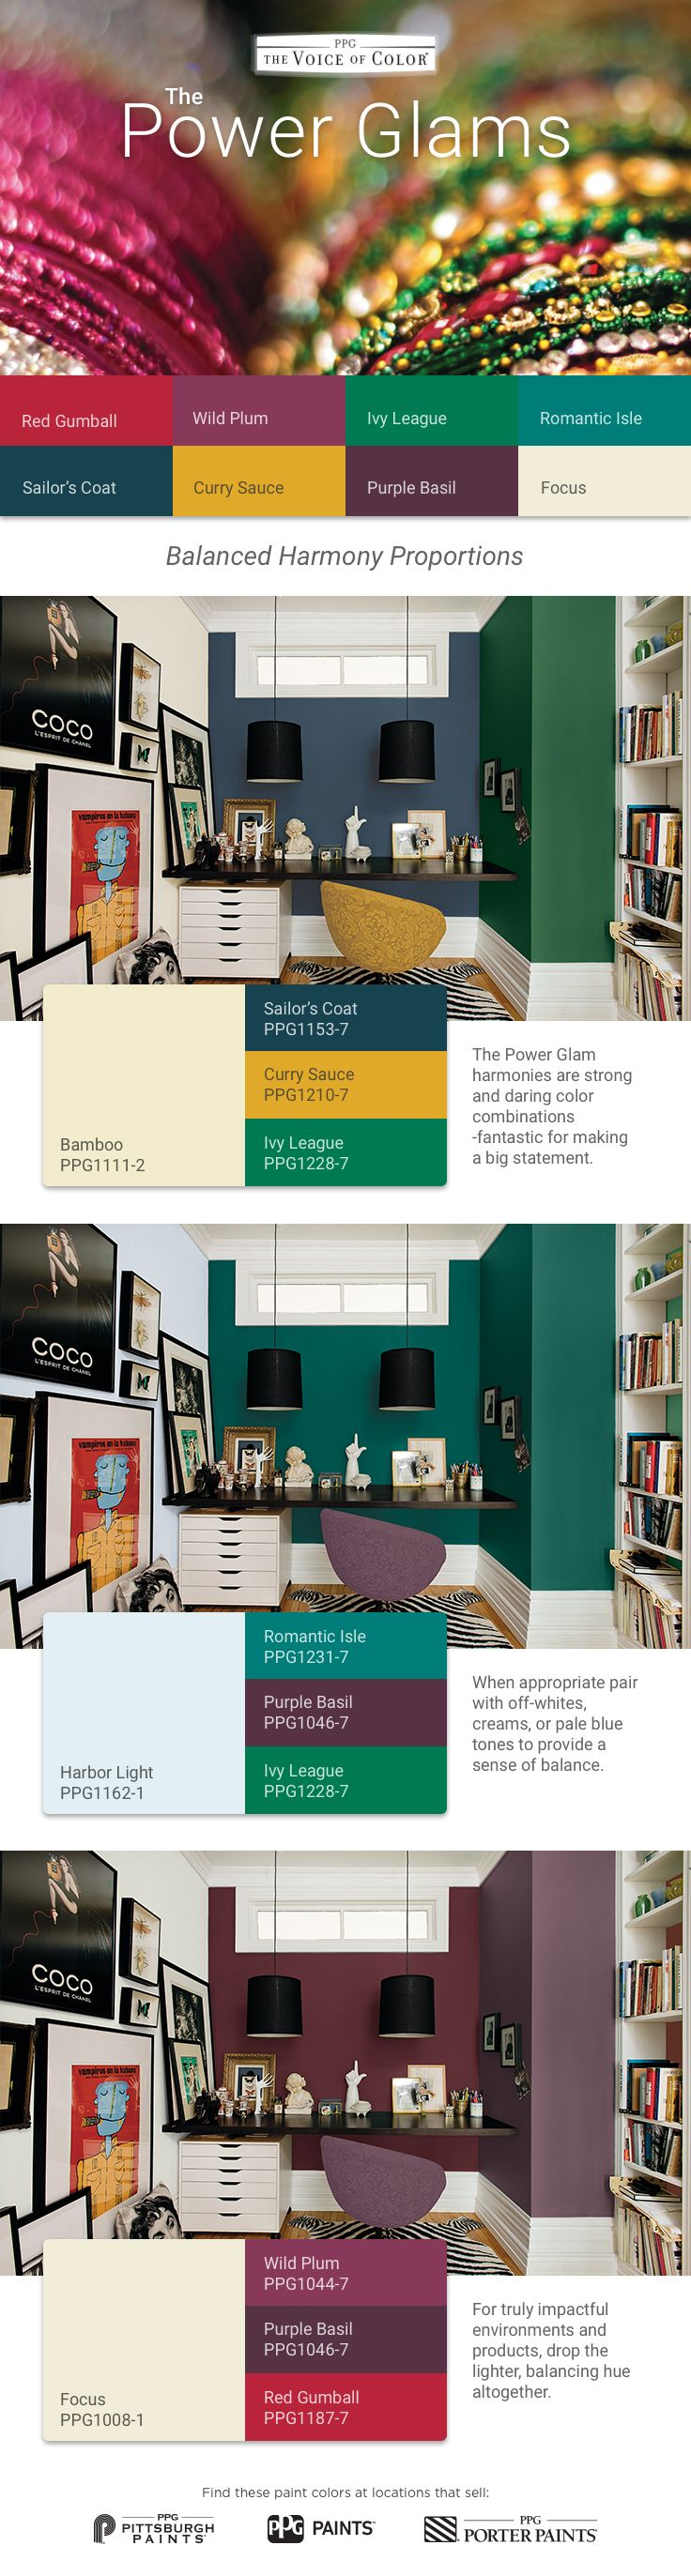 Paint colors website - The Power Glam Color Harmonies From Ppg Voice Of Color Are Strong And Daring